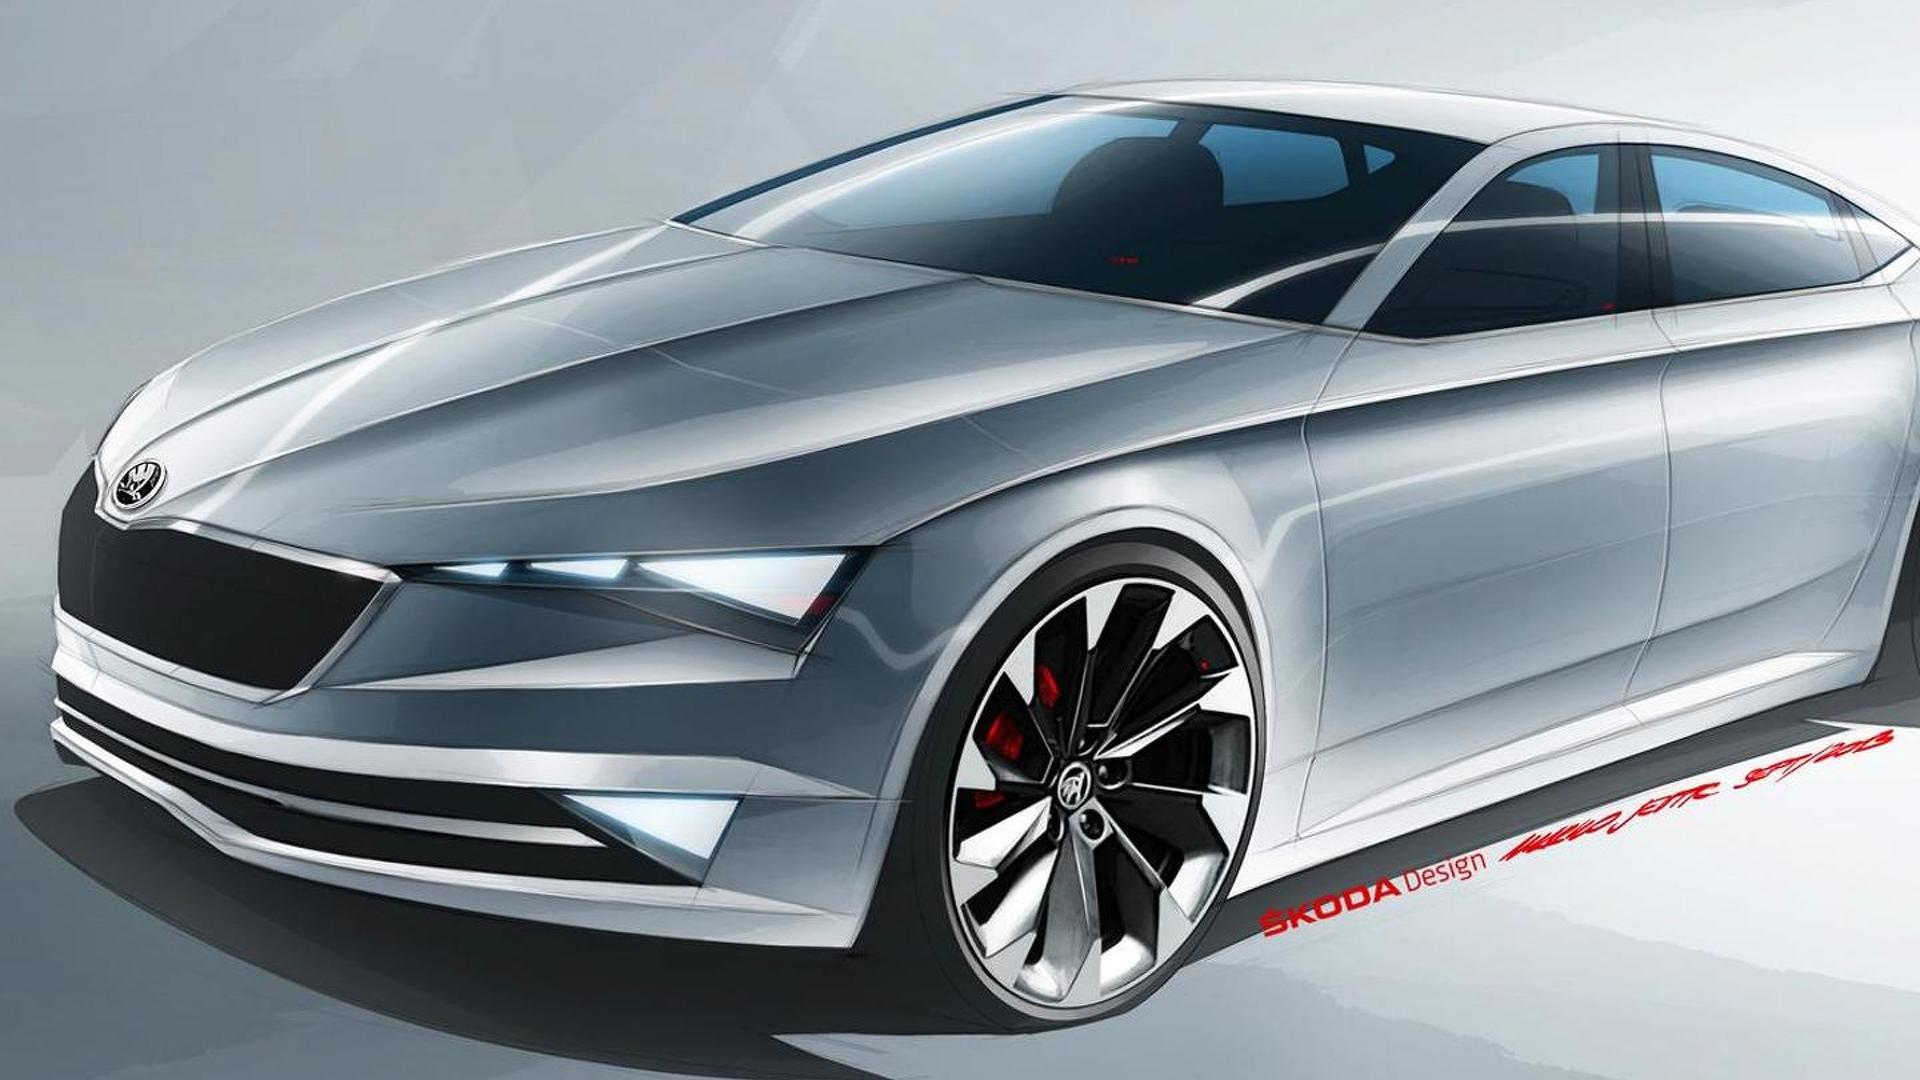 Skoda to showcase 14 models and some